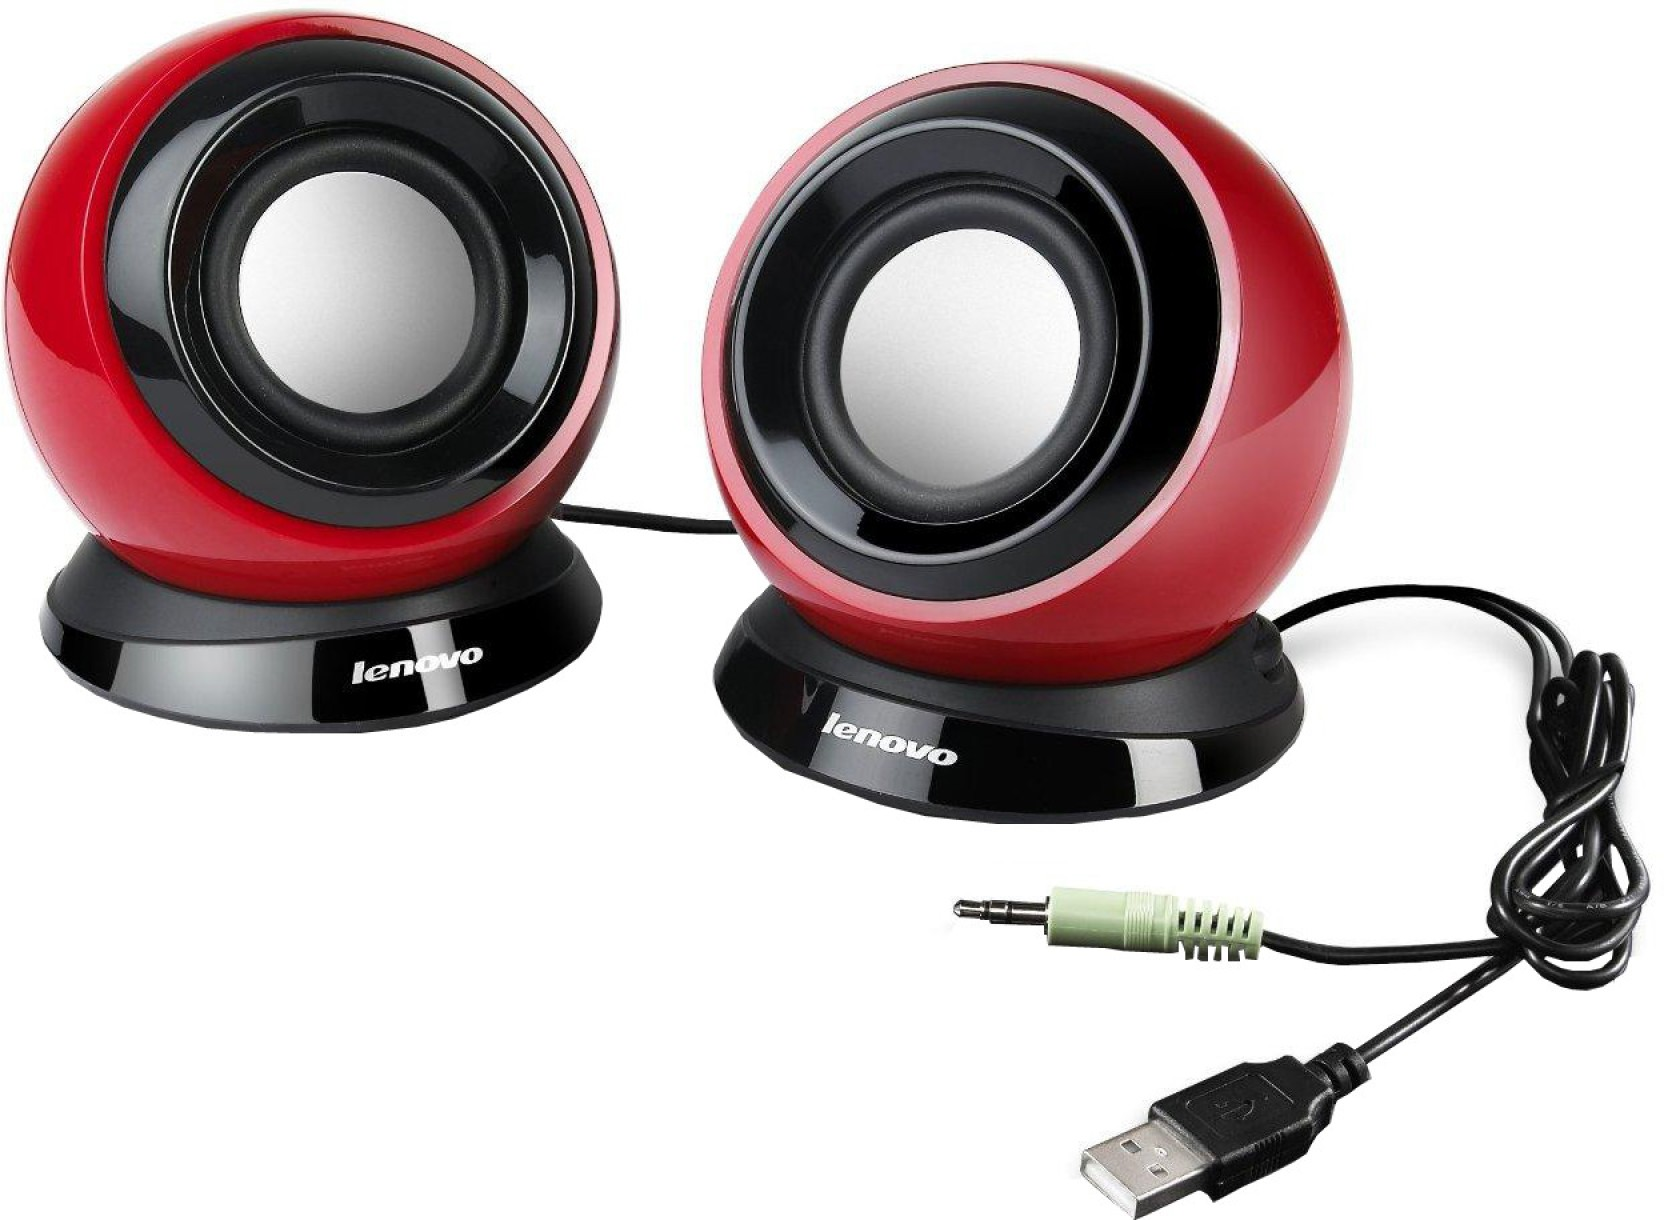 Buy Lenovo M0520 20 Usb Speaker Online From Logitech Z120 Stereo For Laptop Notebook Pc Compare